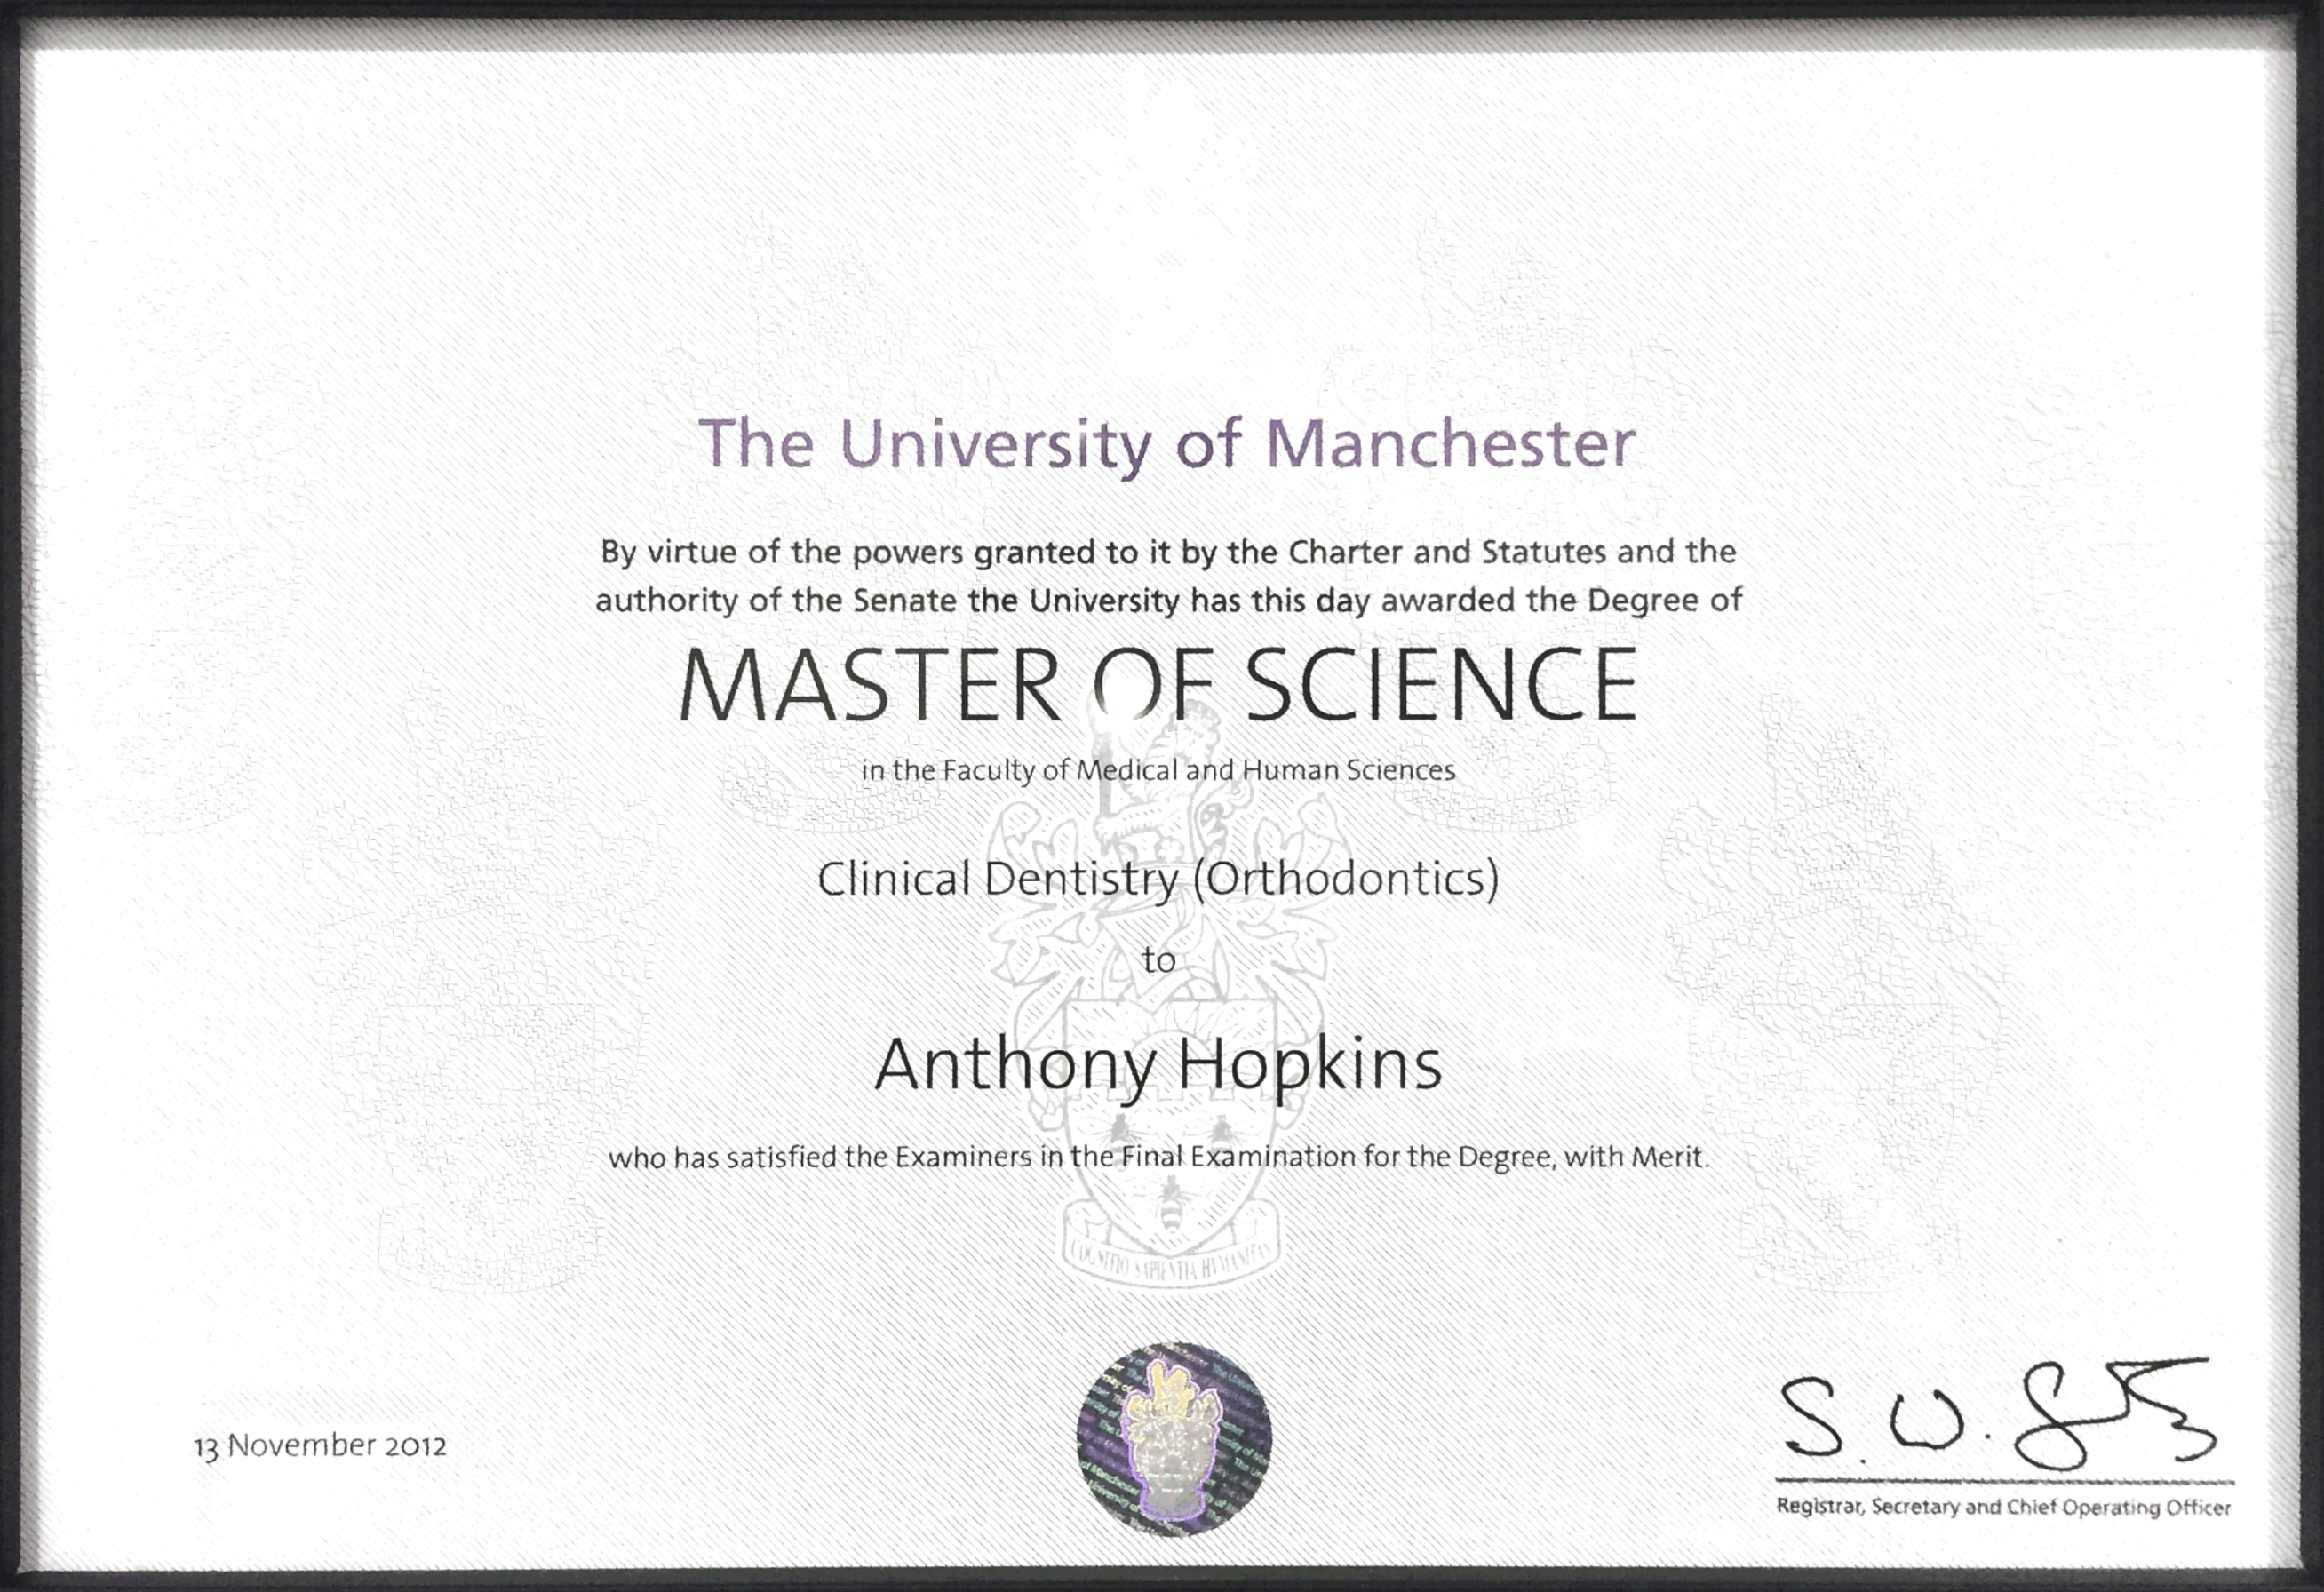 The University of Manchester, Mast of Science in Clinical Dentistry (Orthodontics)